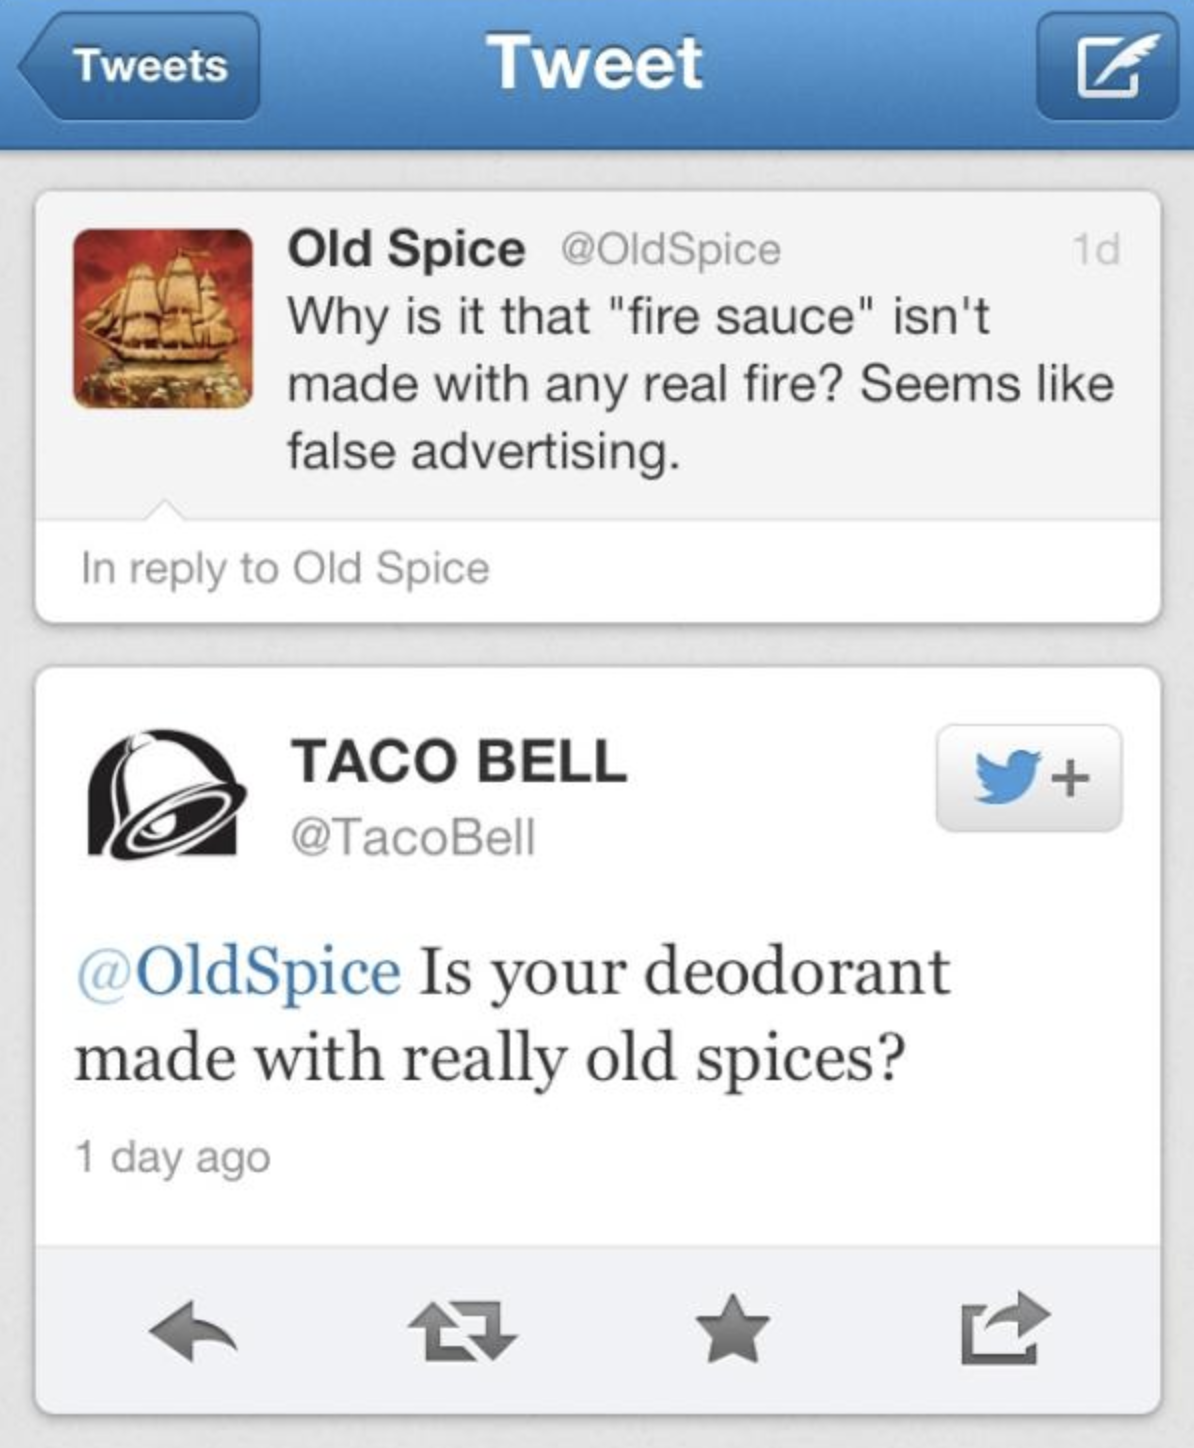 examples of brand repositioning - Taco Bell